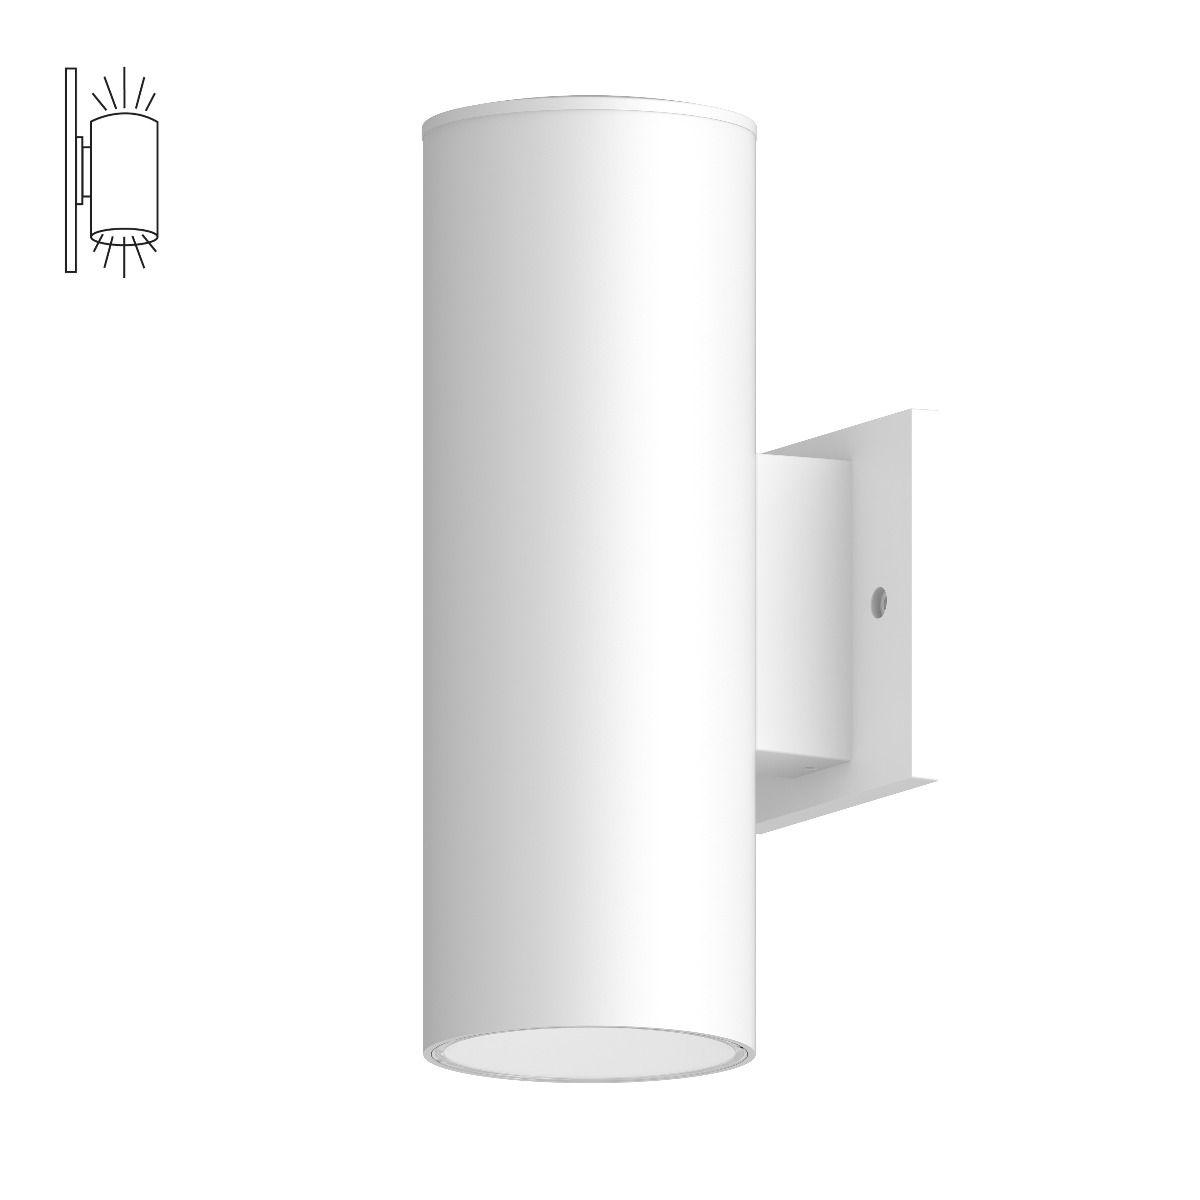 Alcon Lighting 19-W Cilindro IV Architectural LED Large Modern Cylinder  Wall Mount Direct/Indirect Light Fixture